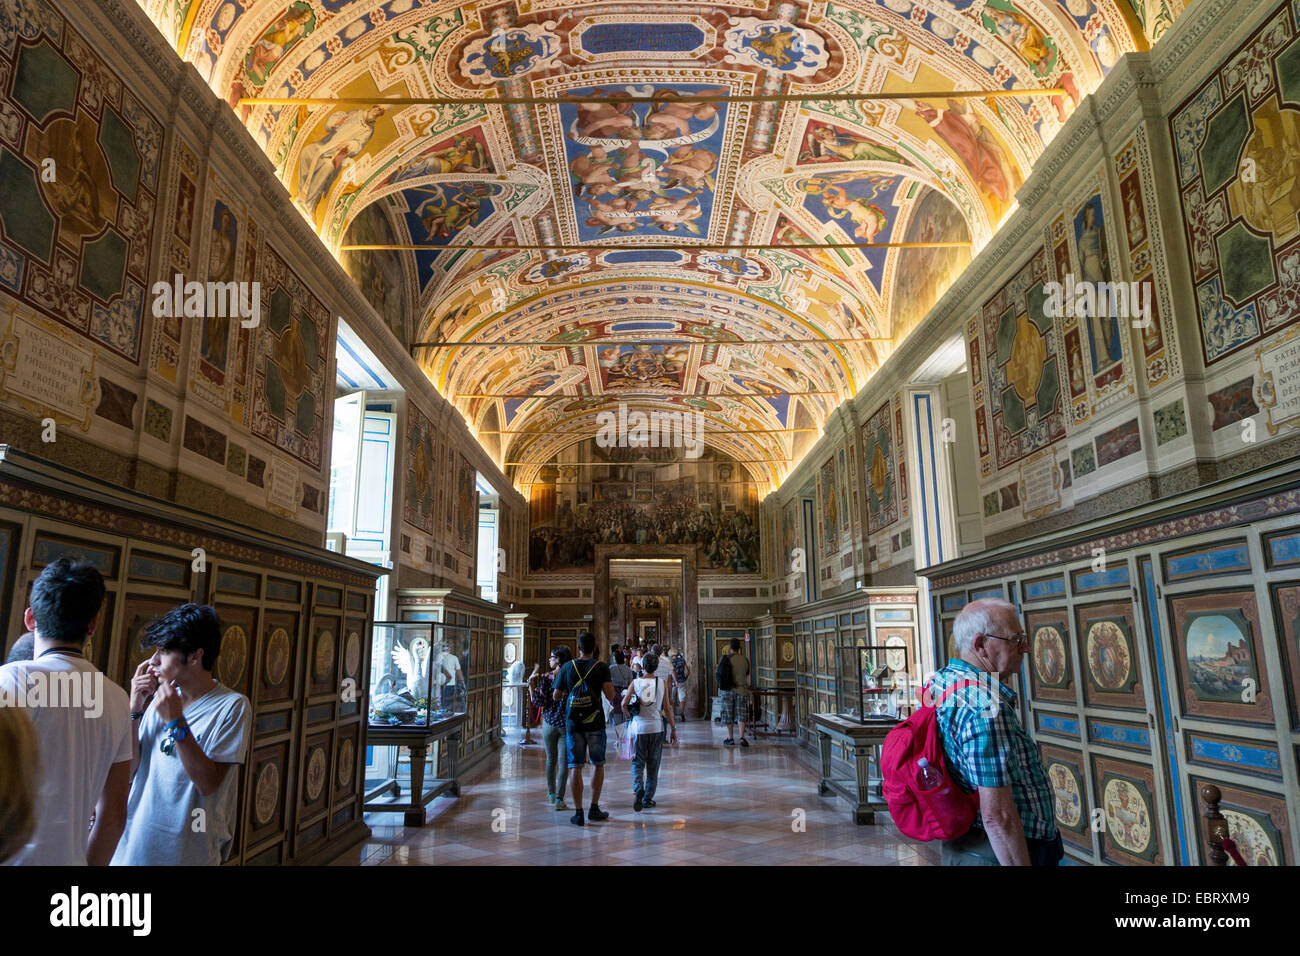 Vatican City: Visitors at the Vatican Museums. Photo from 4th September 2014. Stock Photo